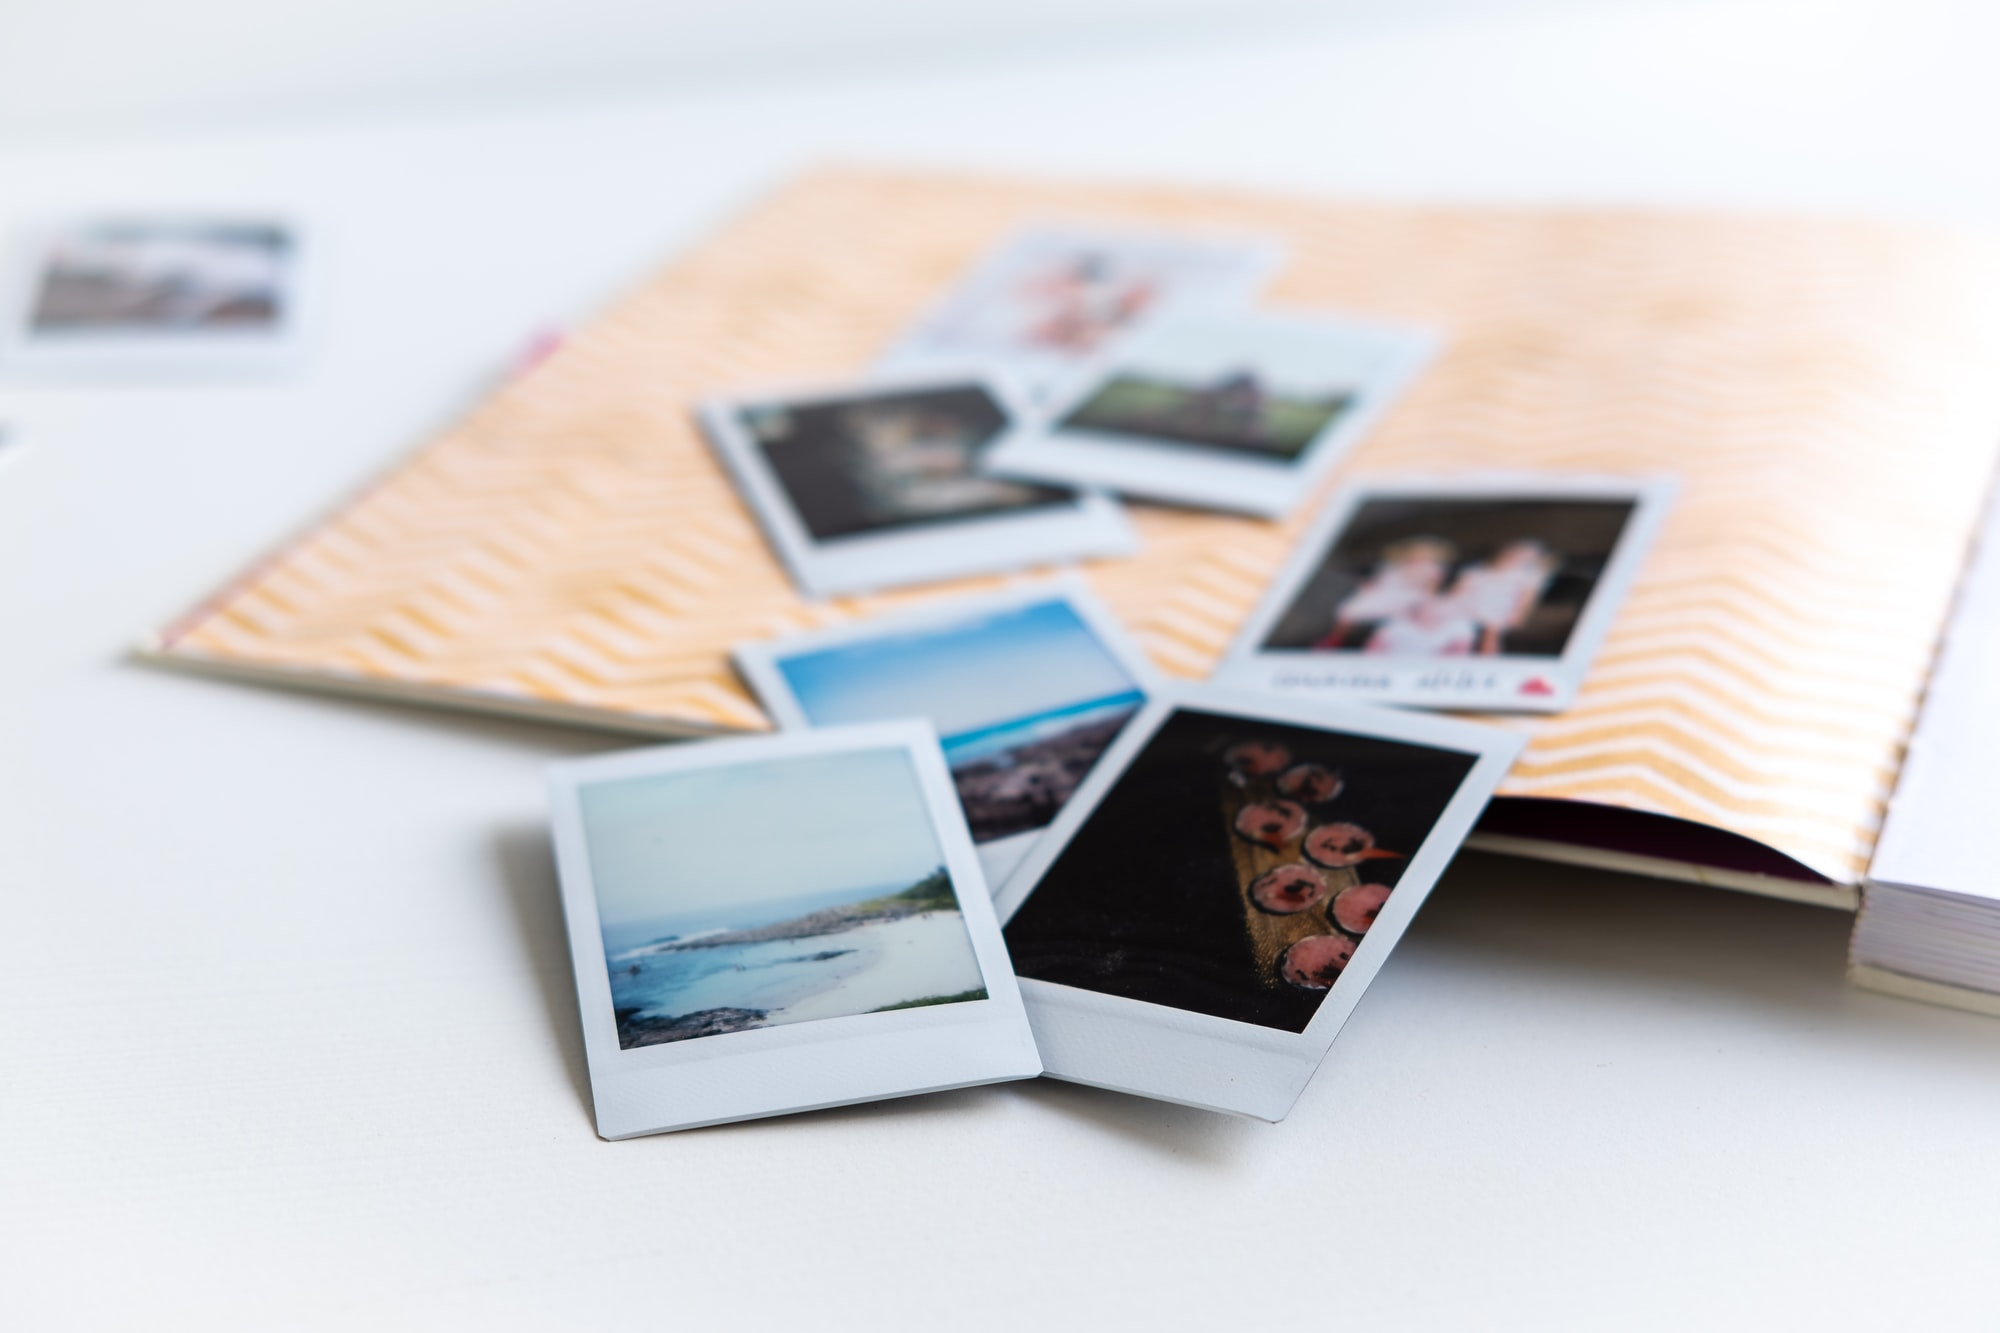 Creating a little book full of happy memories... and polaroids.